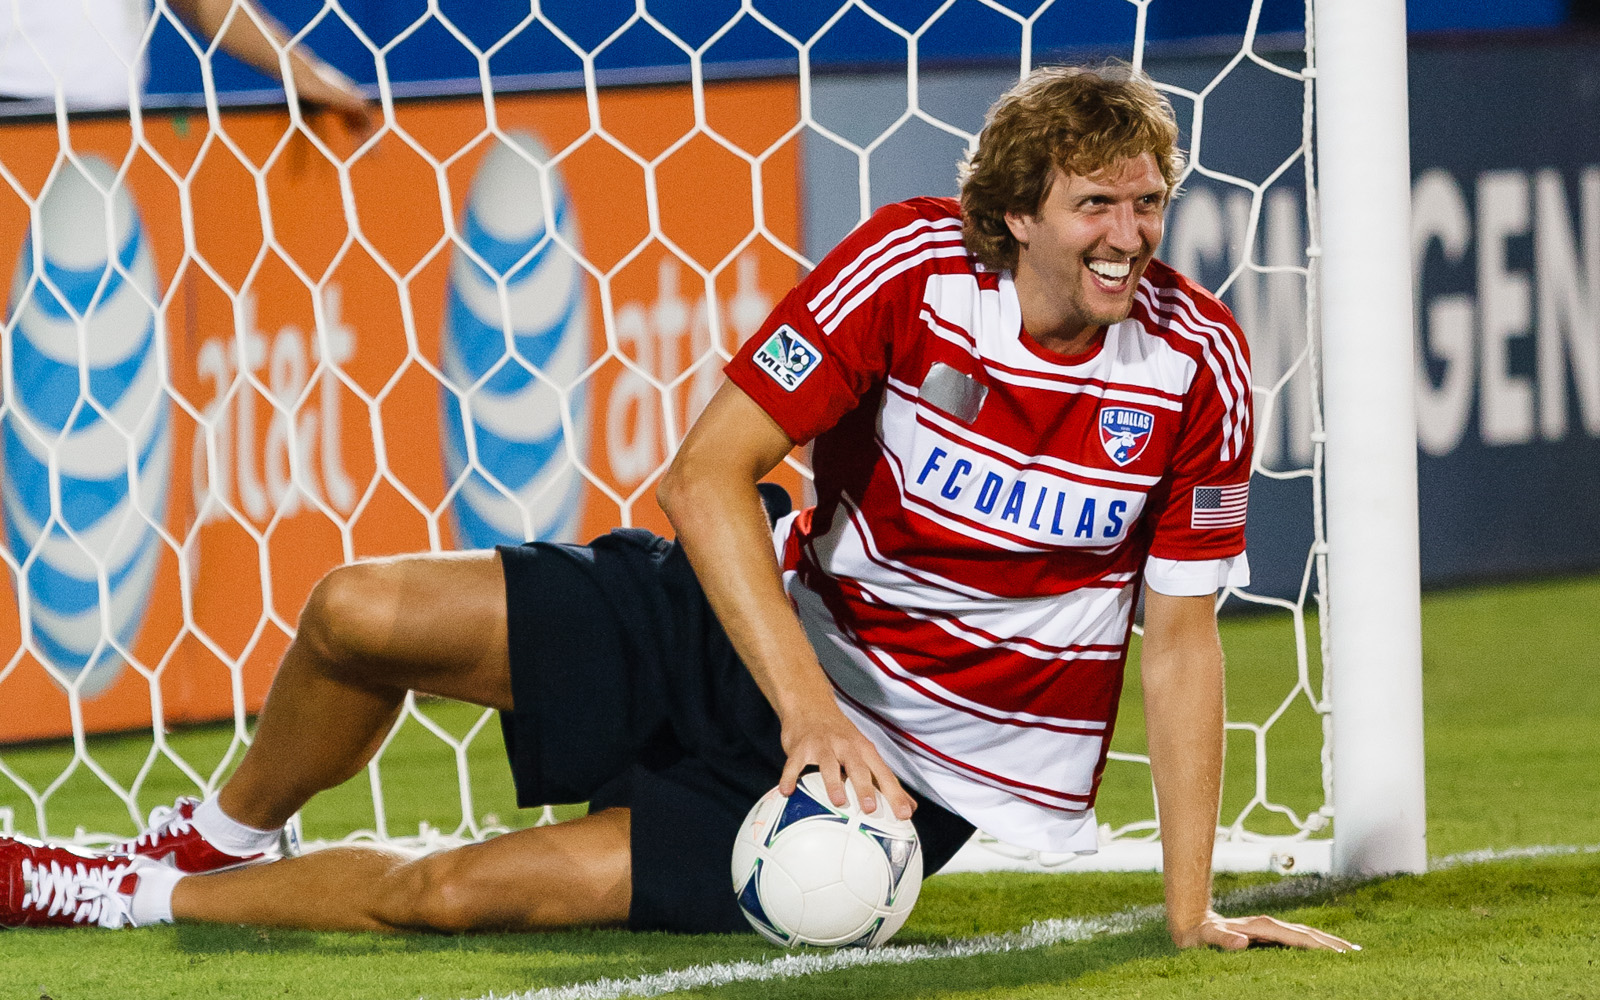 Dirk at FC Dallas